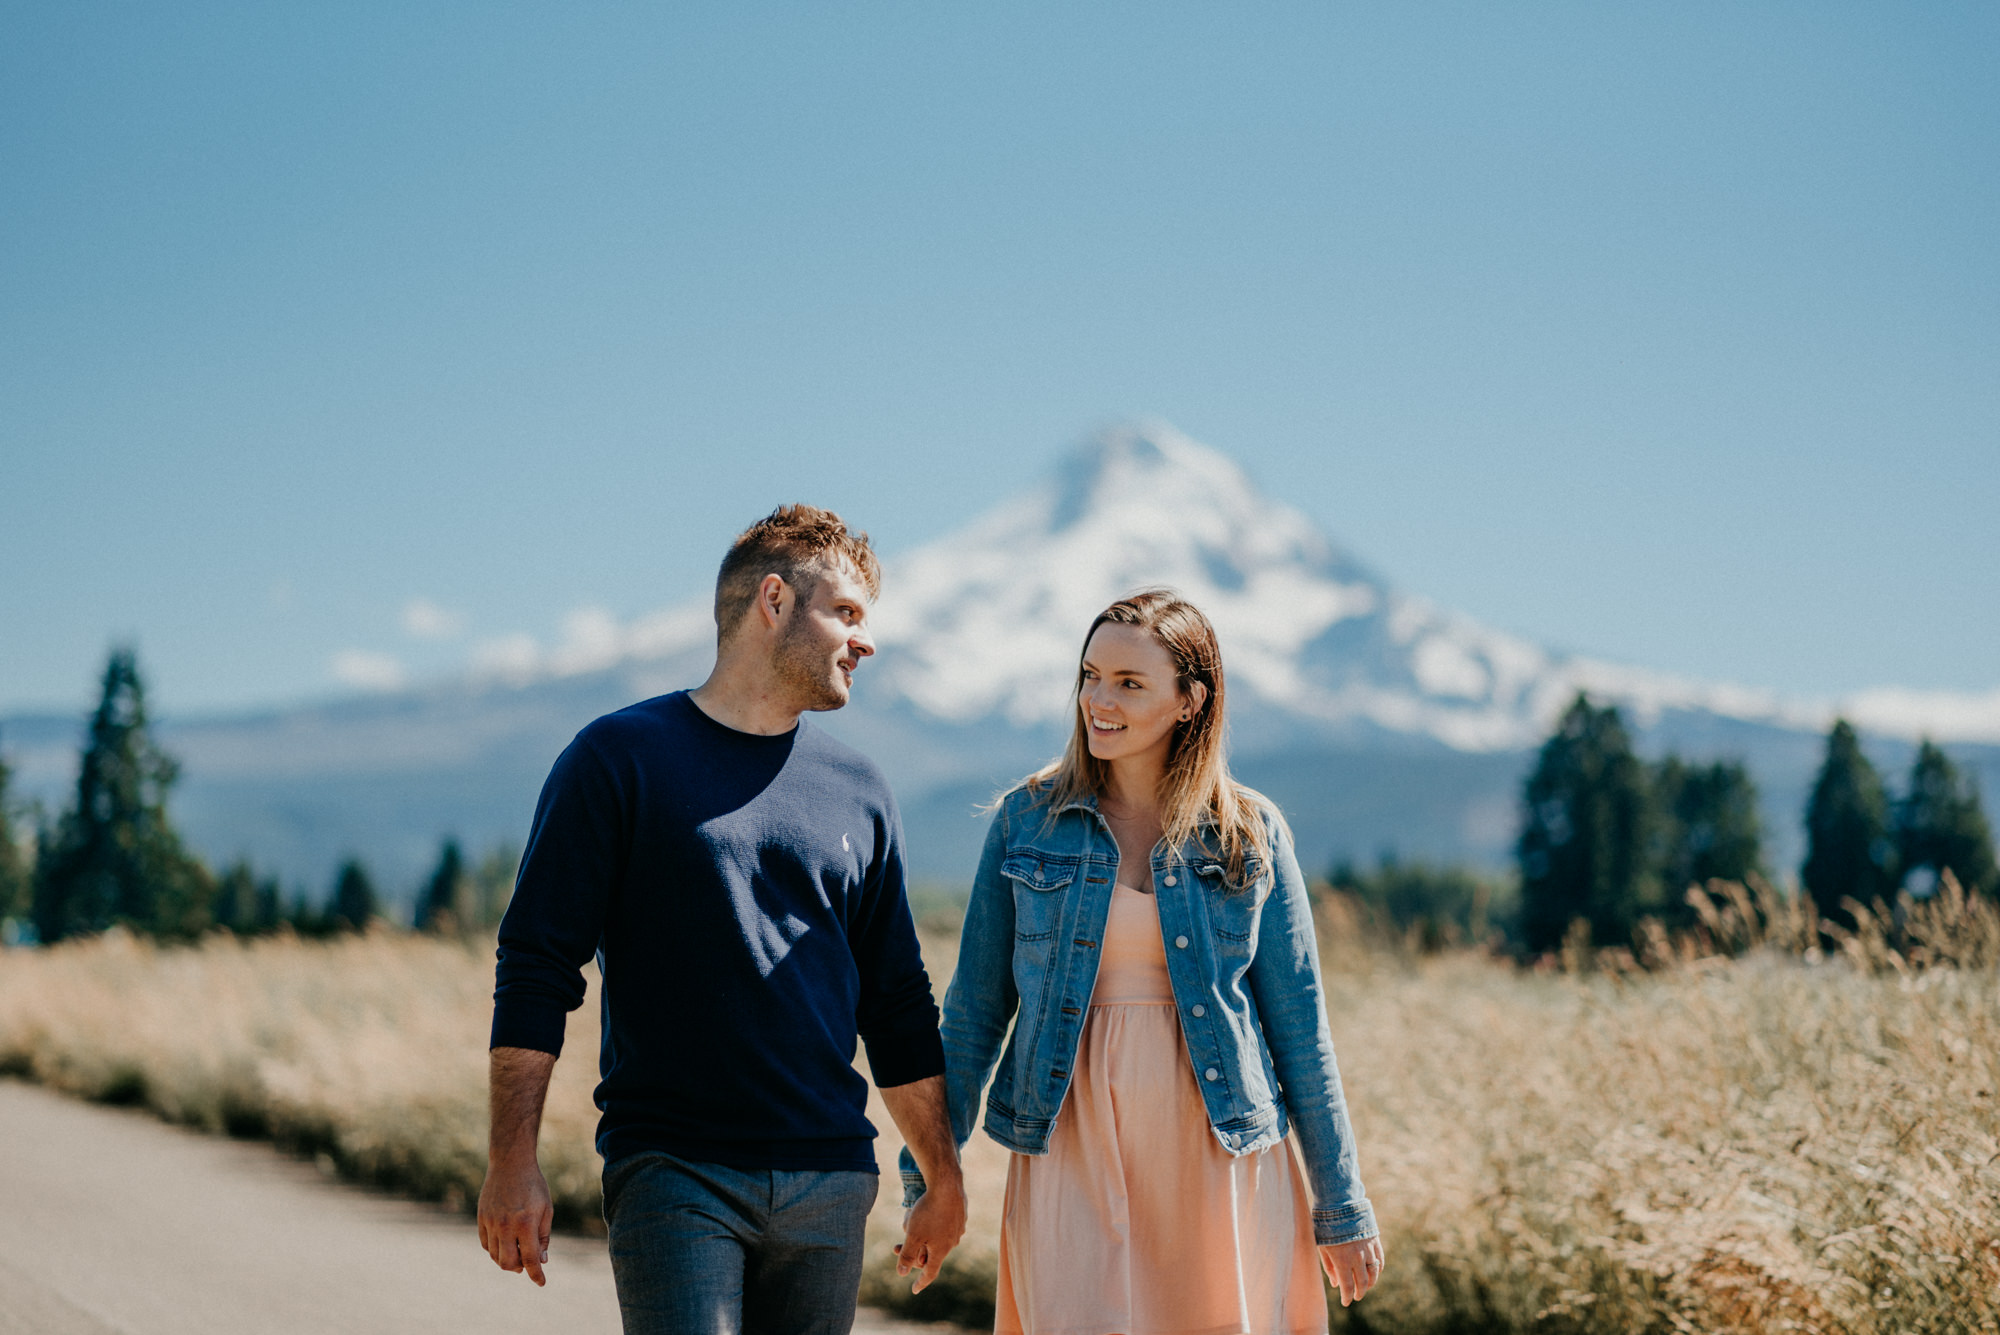 14-Mt-hood-lavender-farms-engagment-couple-summer-7424.jpg